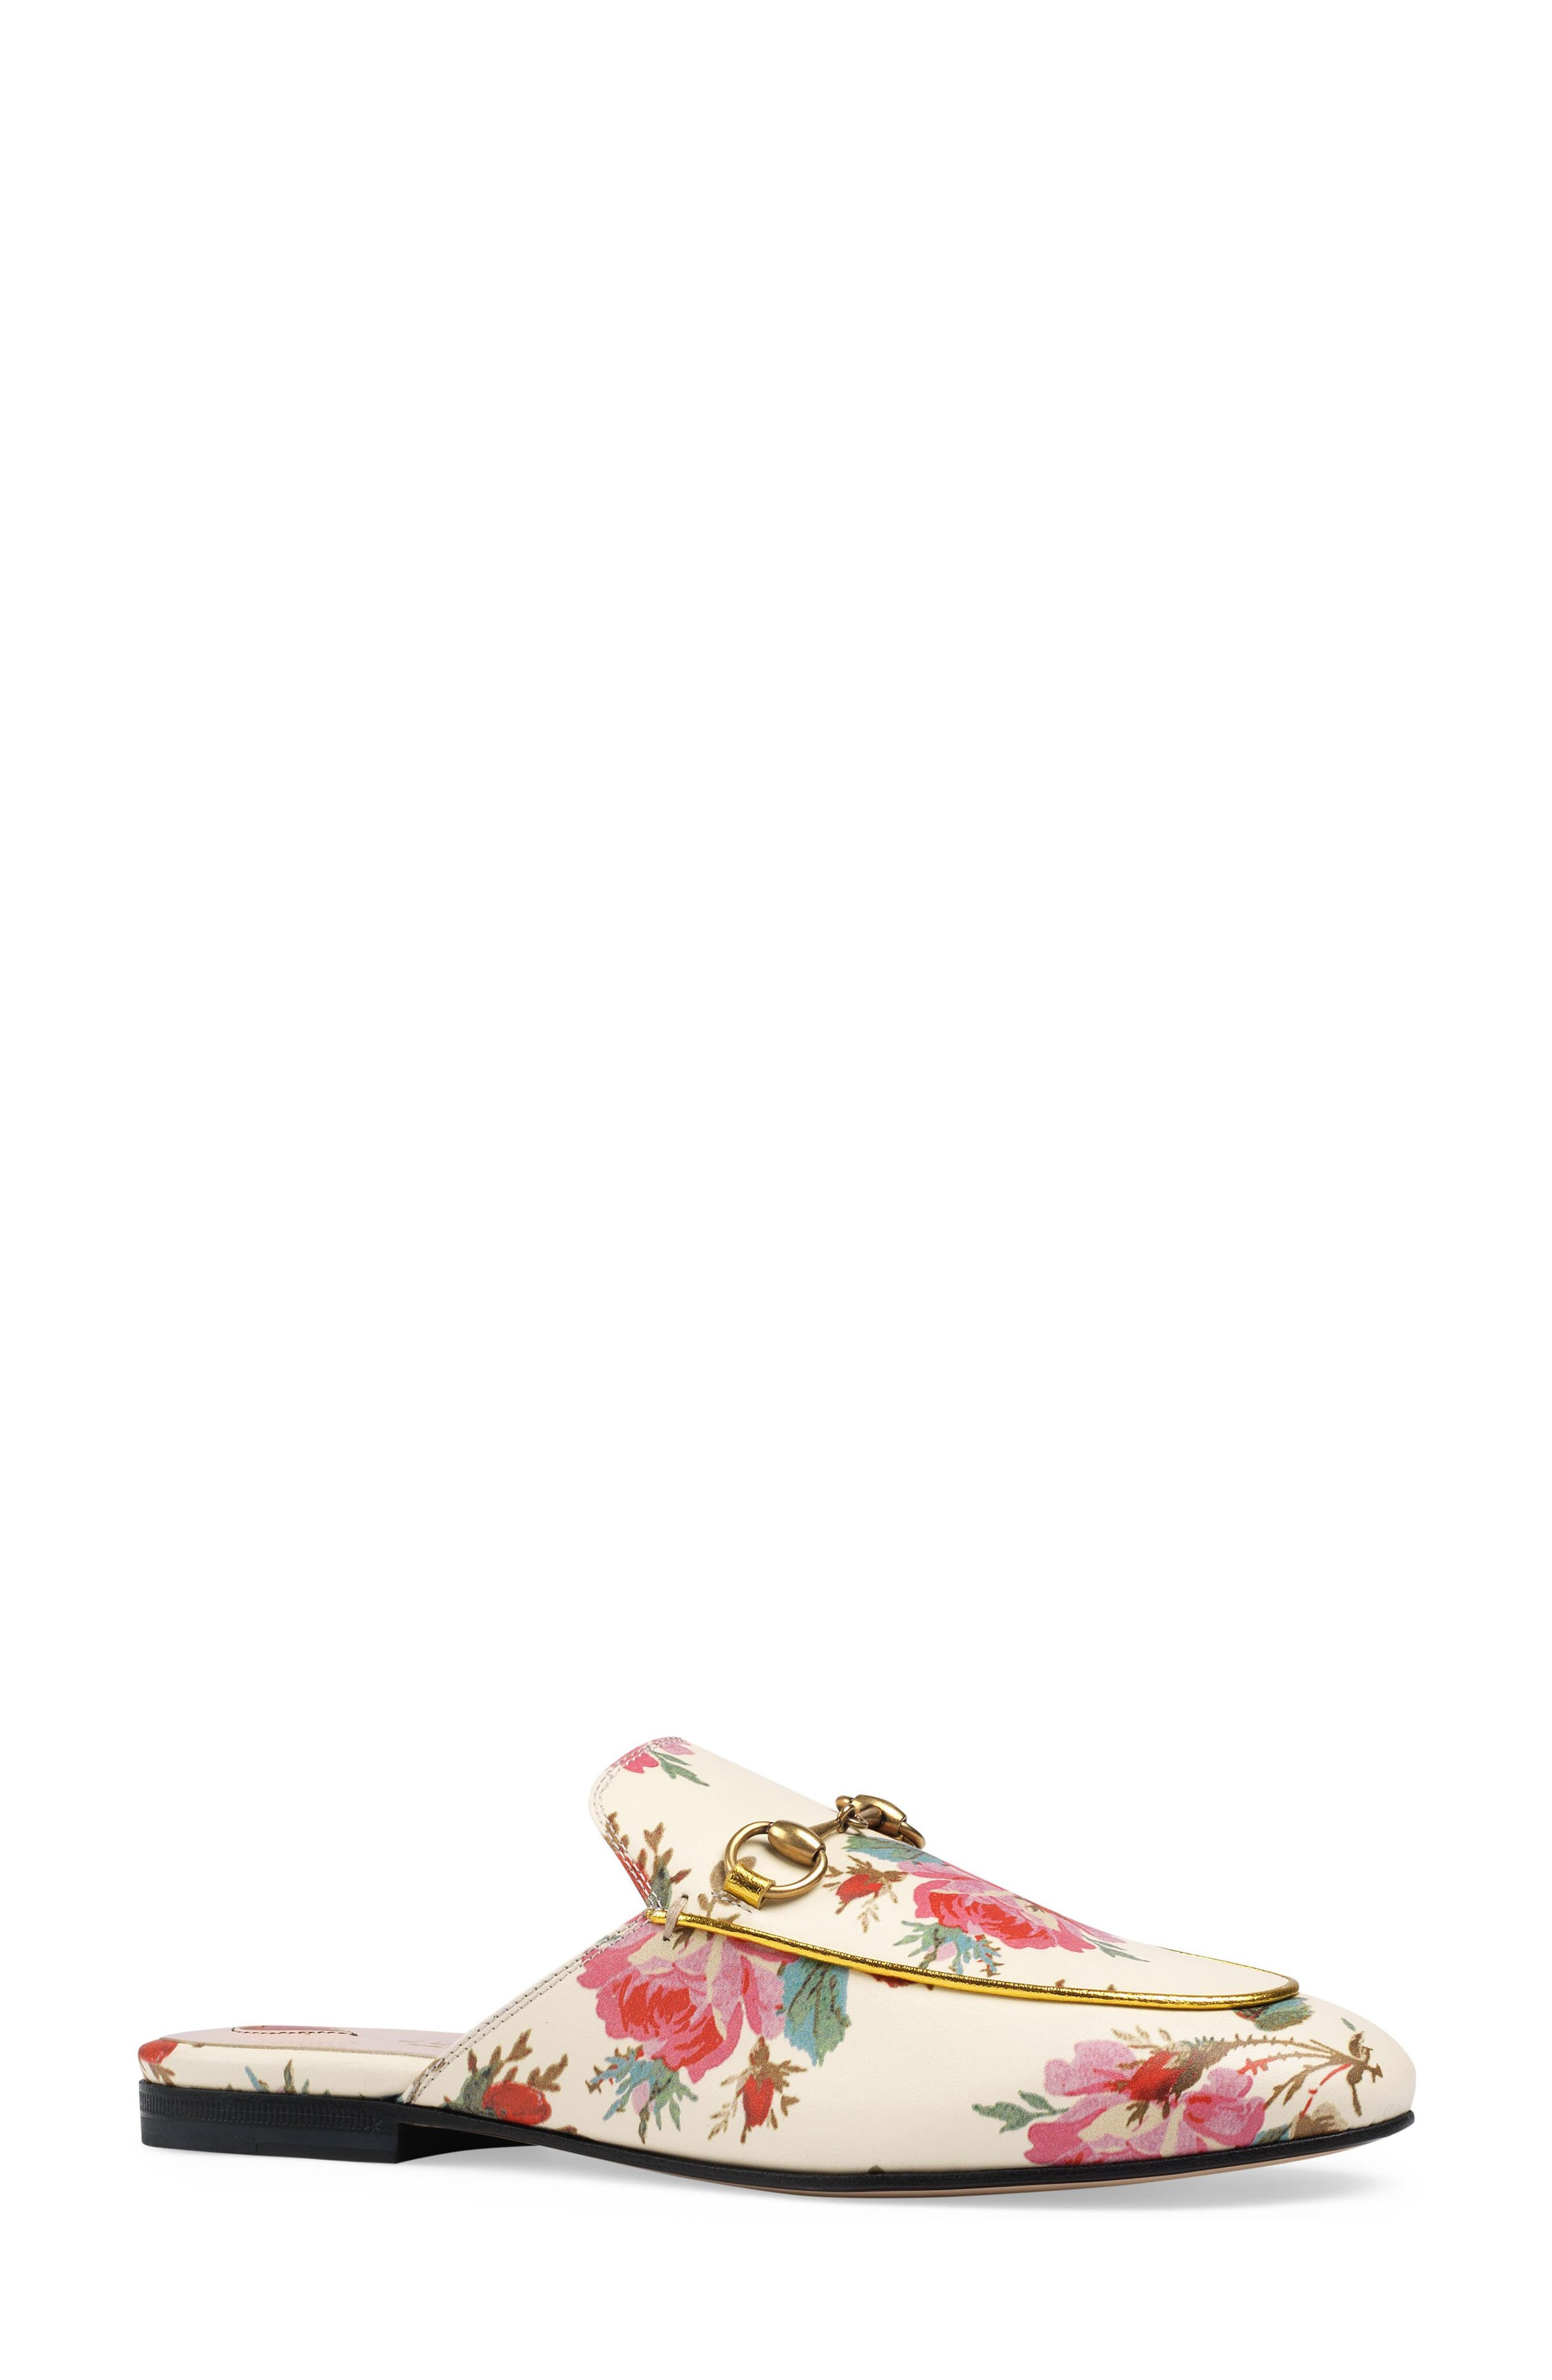 Gucci Princetown Floral Loafer Mule (Women)